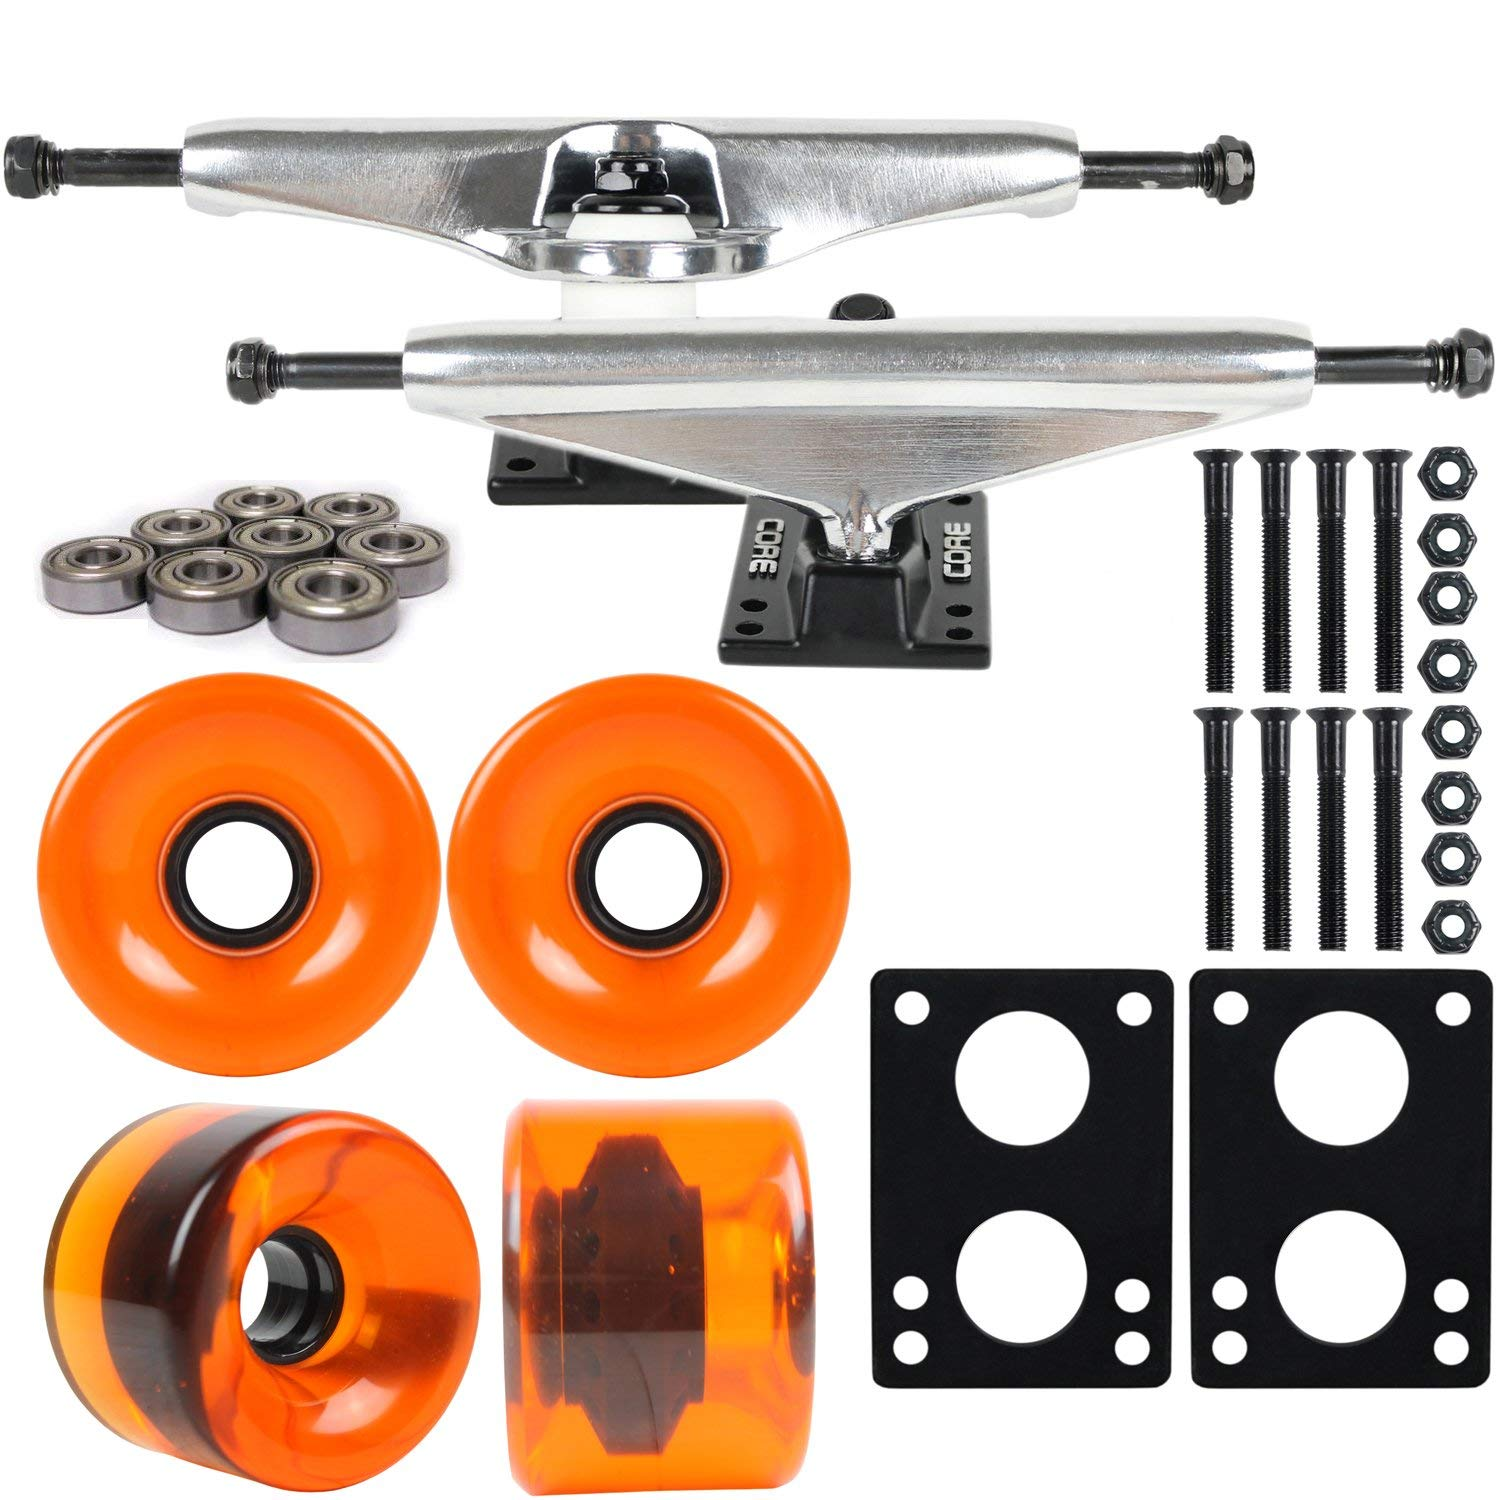 "Longboard Skateboard Trucks Combo Set 76mm Blank Wheels with Silver Trucks, Bearings, and Hardware Package (76mm Translucent Orange Wheels, 7.0 (9.63"") Silver Trucks)"